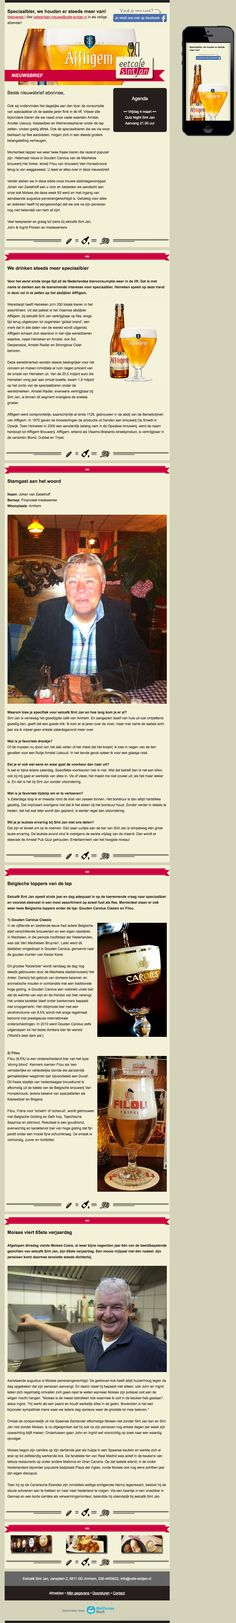 Email Newsletter Template. Dutch beer consumption is rising up again. Sent on February 17, 2016.